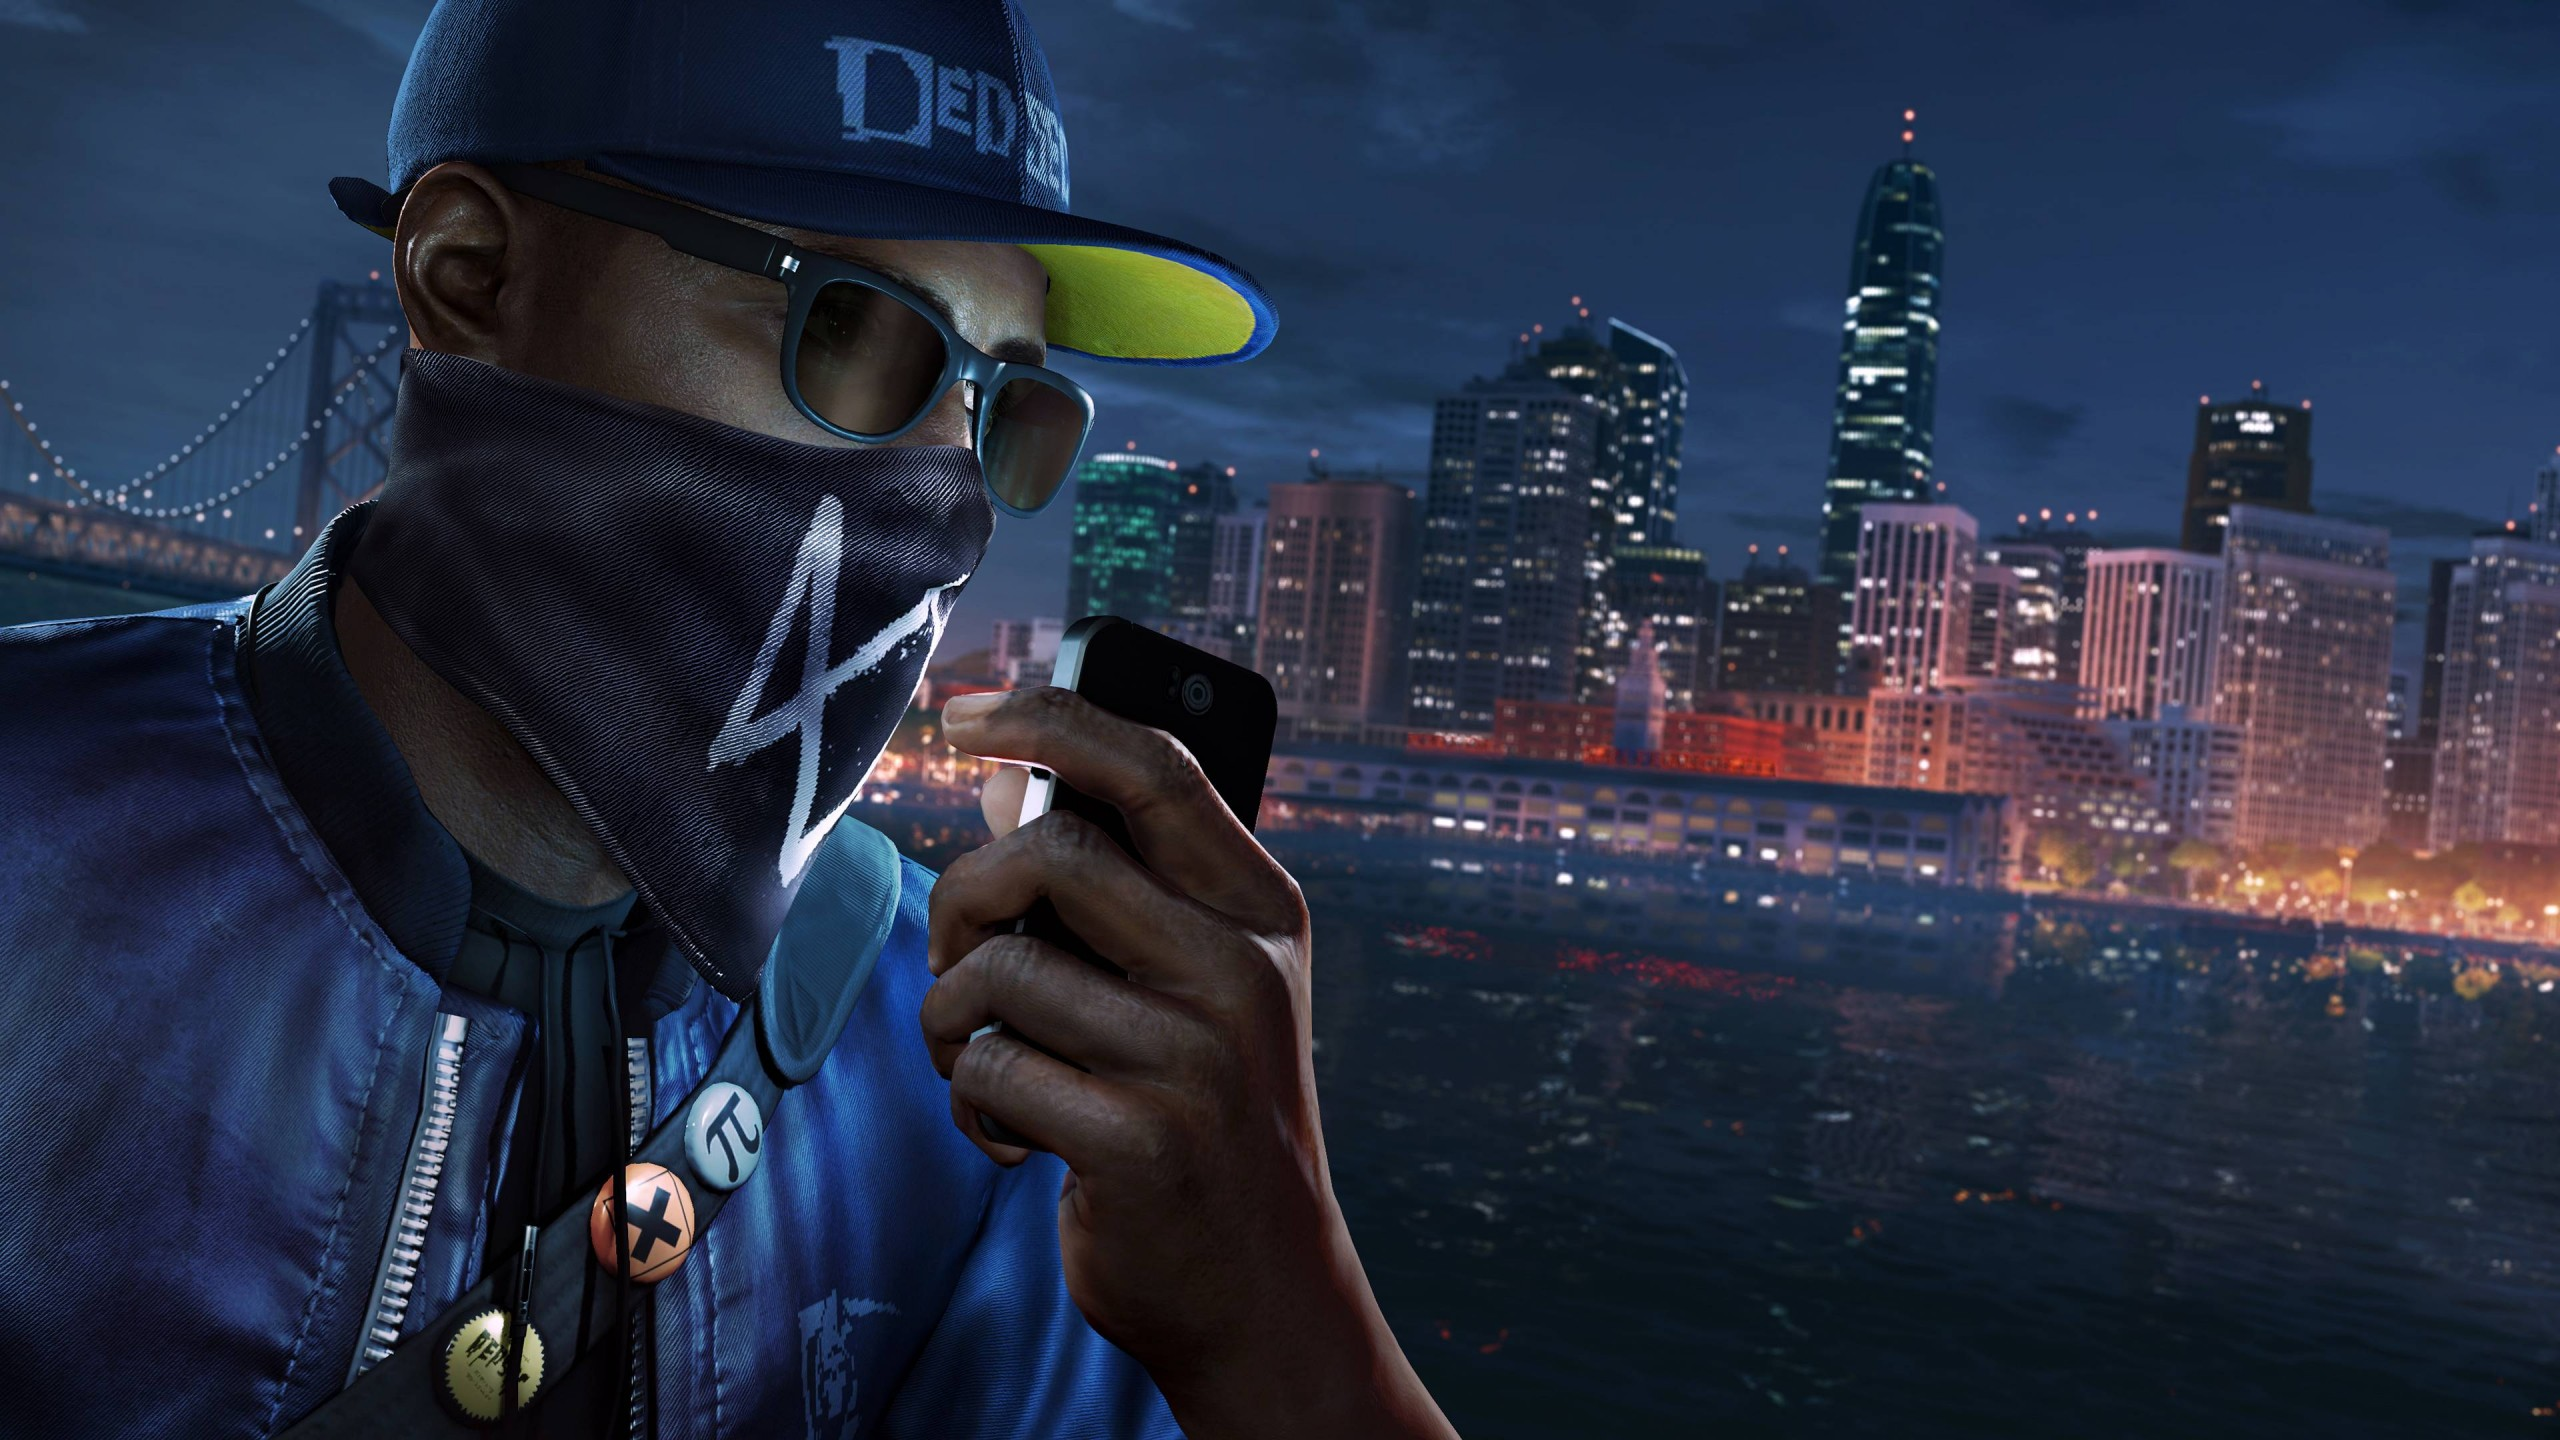 Watch Dogs 2 4k Computer Wallpaper 1350 2560x1440 Px